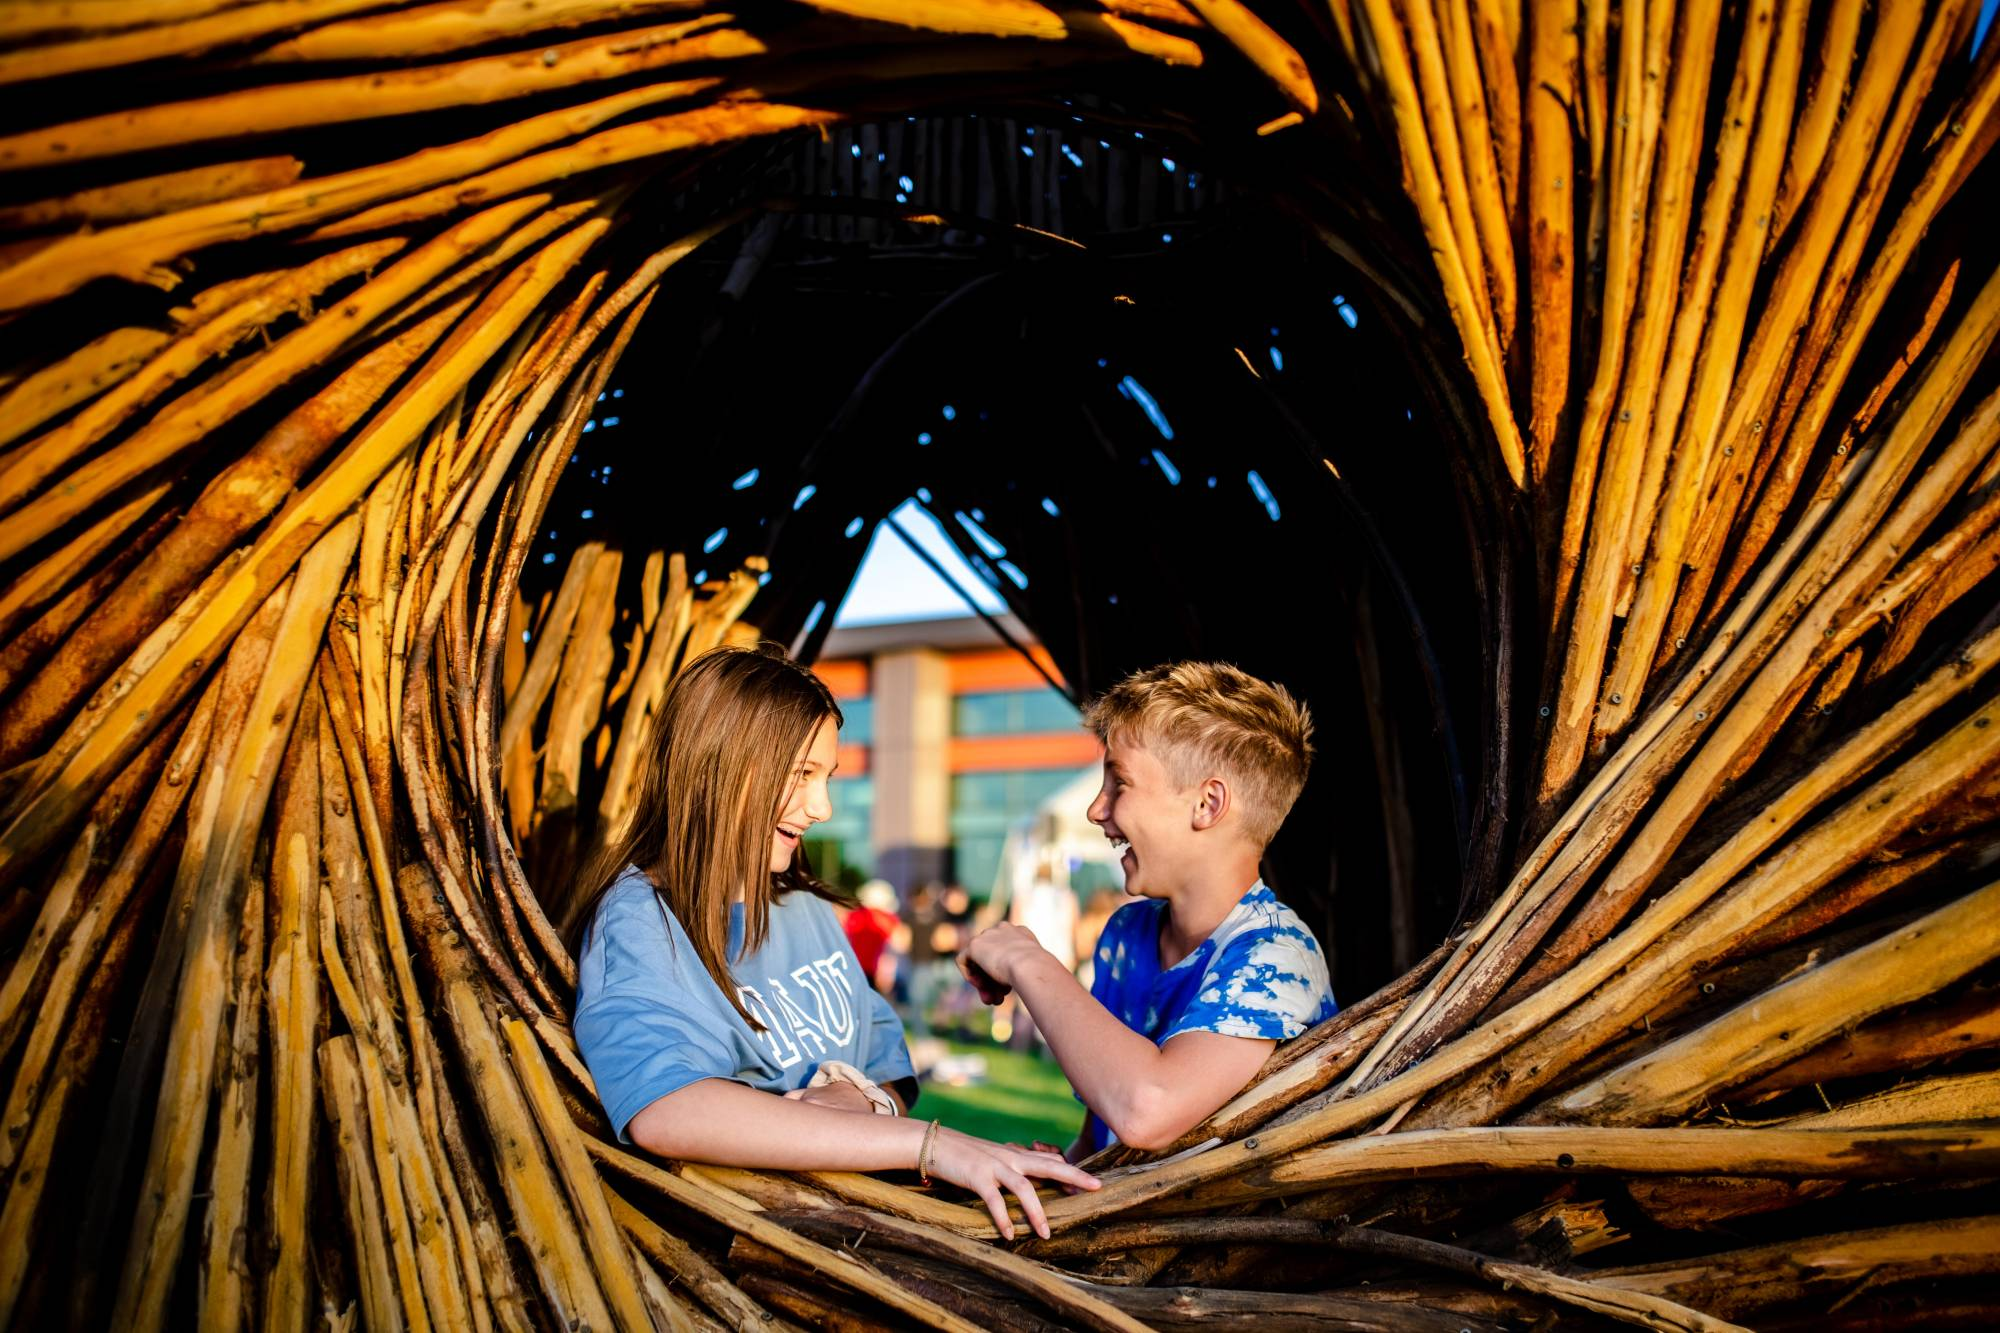 One teenage girl and one boy laugh while standing inside the Anythink Wright Farms wood spirit nest. They are both wearing blue short sleeve shirts.